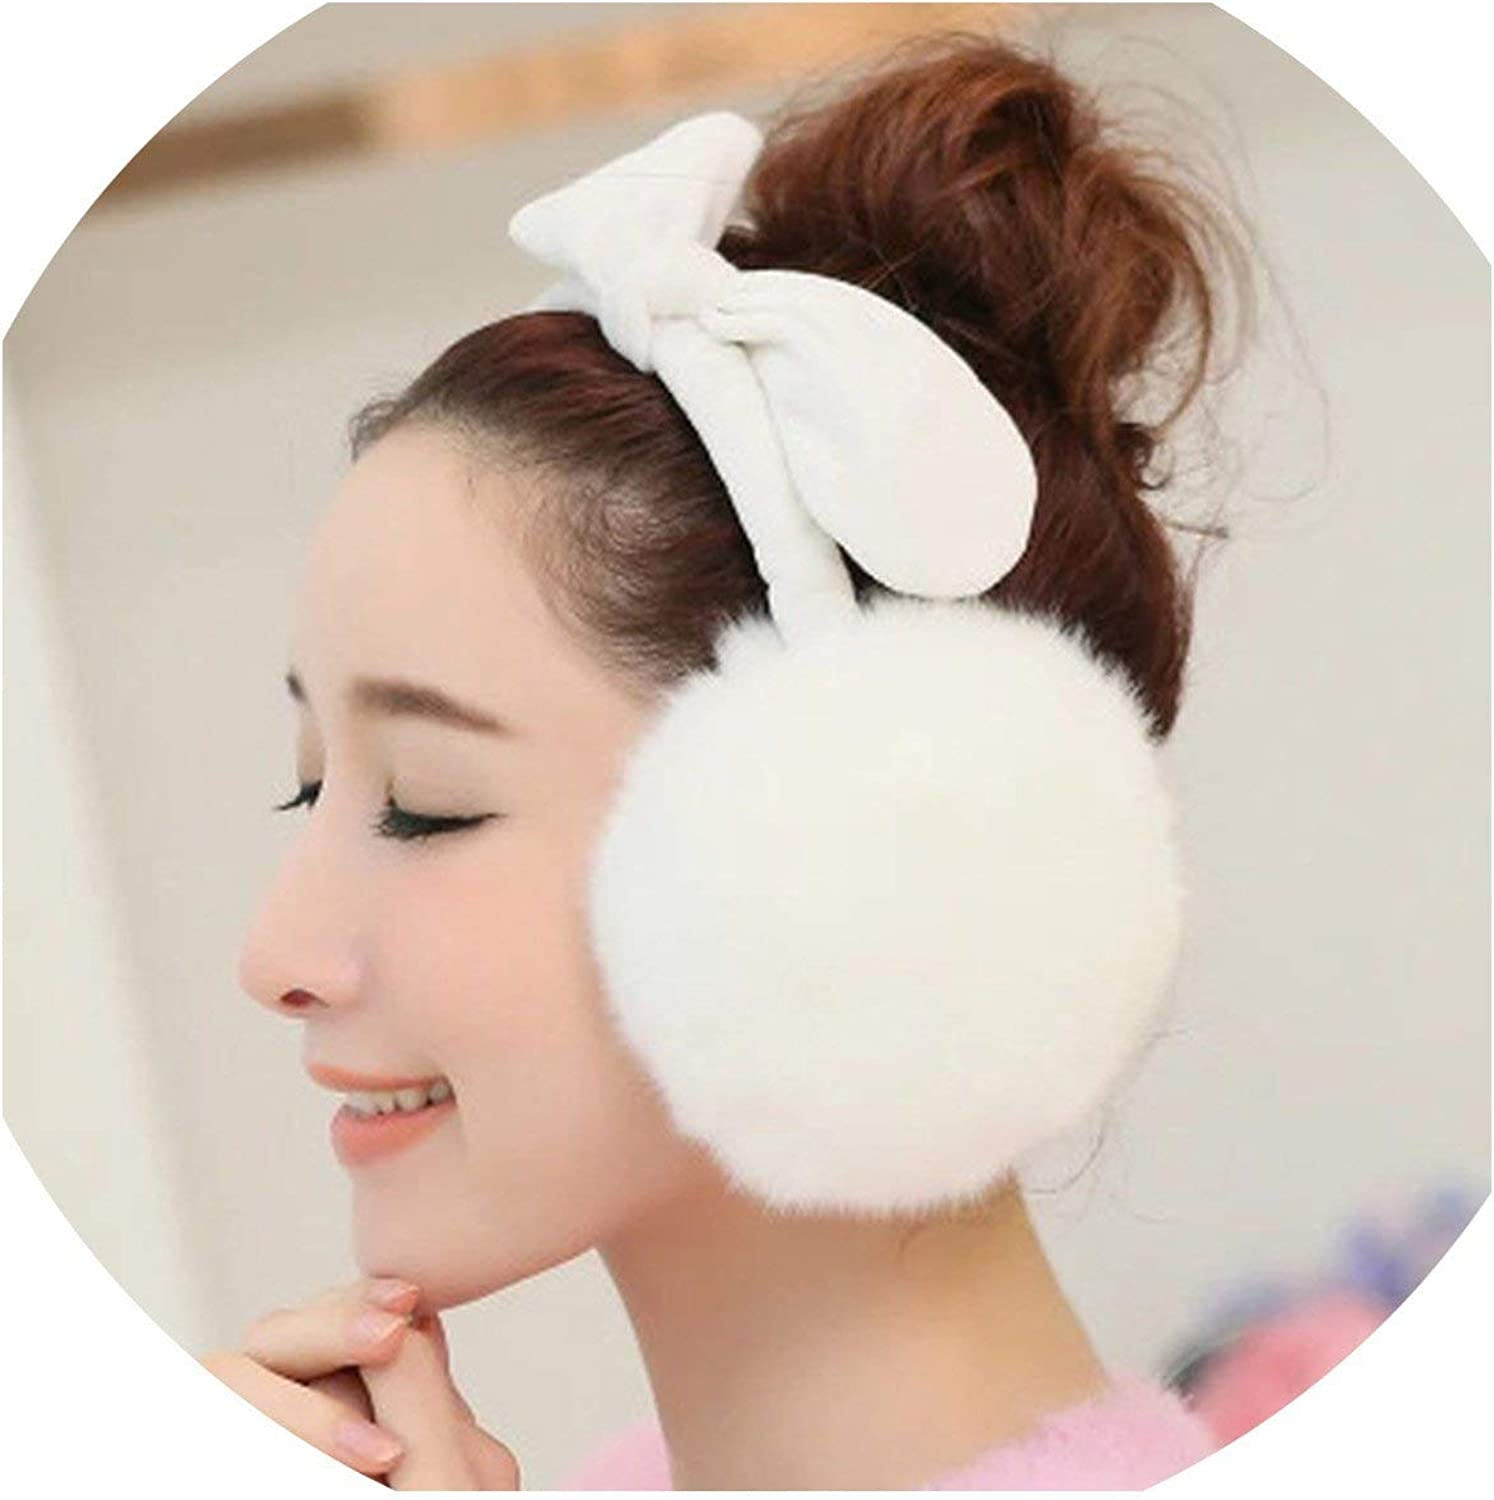 Winter Earmuffs for Women Warm Faux Fur Covers Earlap Cute Rabbit Ear Cap